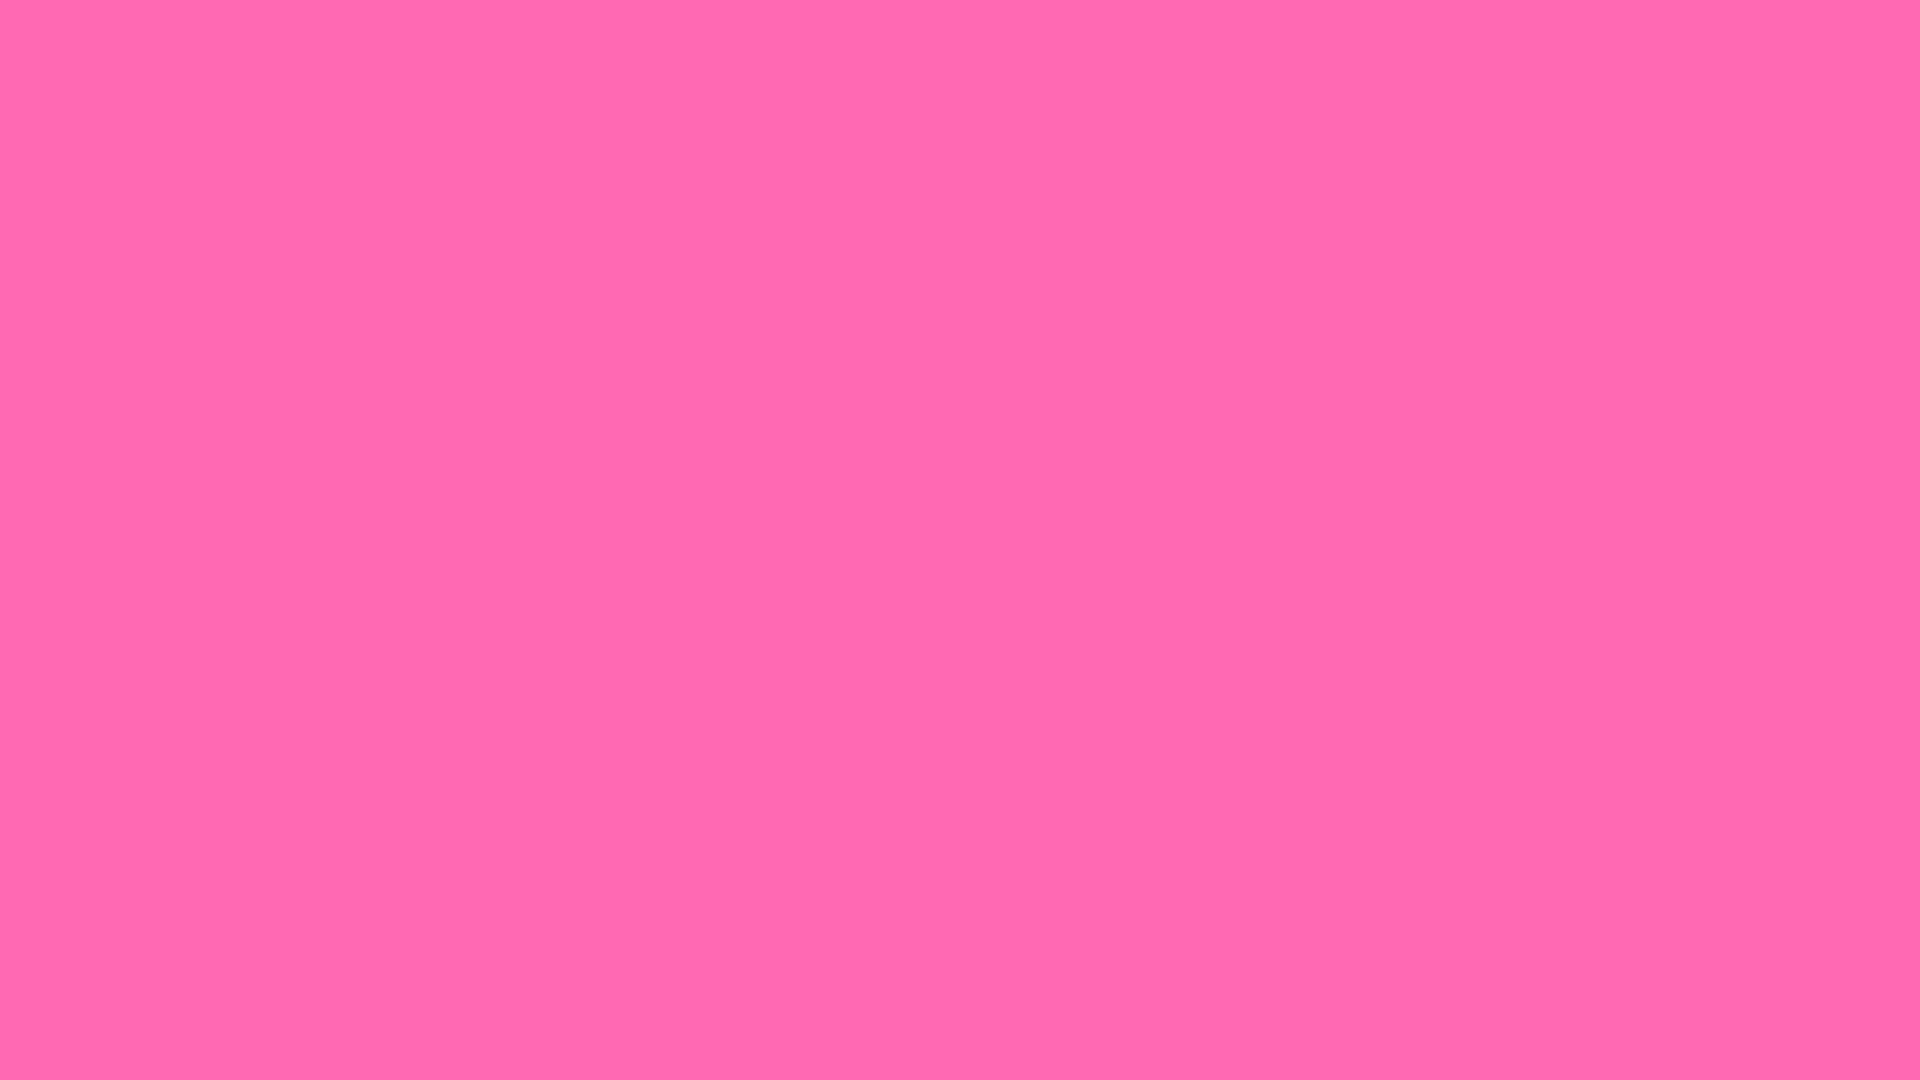 Pure Pink Wallpaper Best Hd Wallpapers Solid Color Backgrounds Pink Wallpaper Pink Background